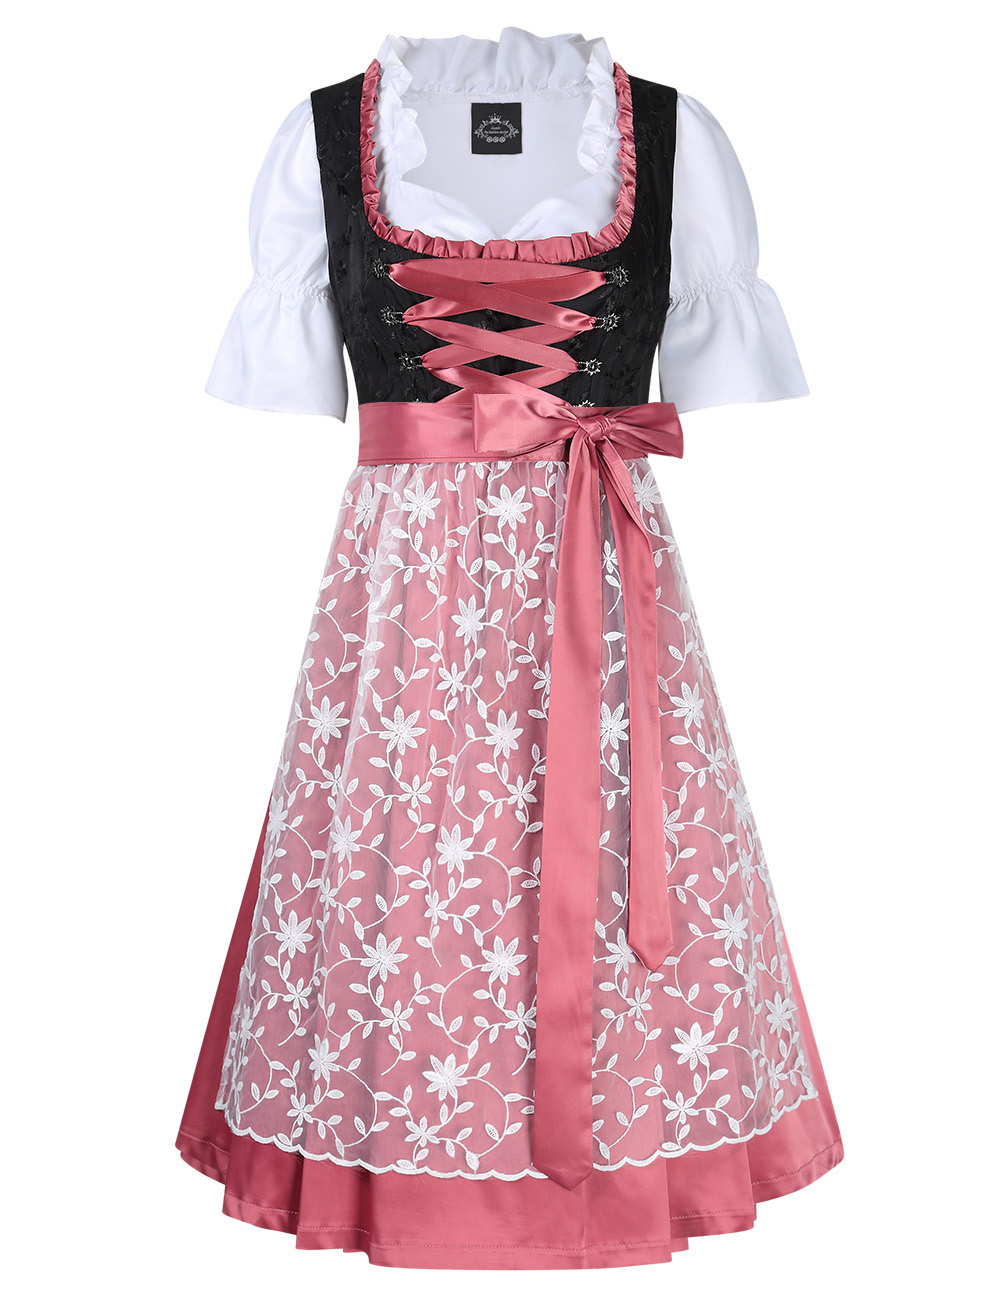 [EU Direct] 3PCS Women's Ruffle Floral Lace Beer Dress Traditional Dirndl Set for Oktoberfest Theme Party Cosplay